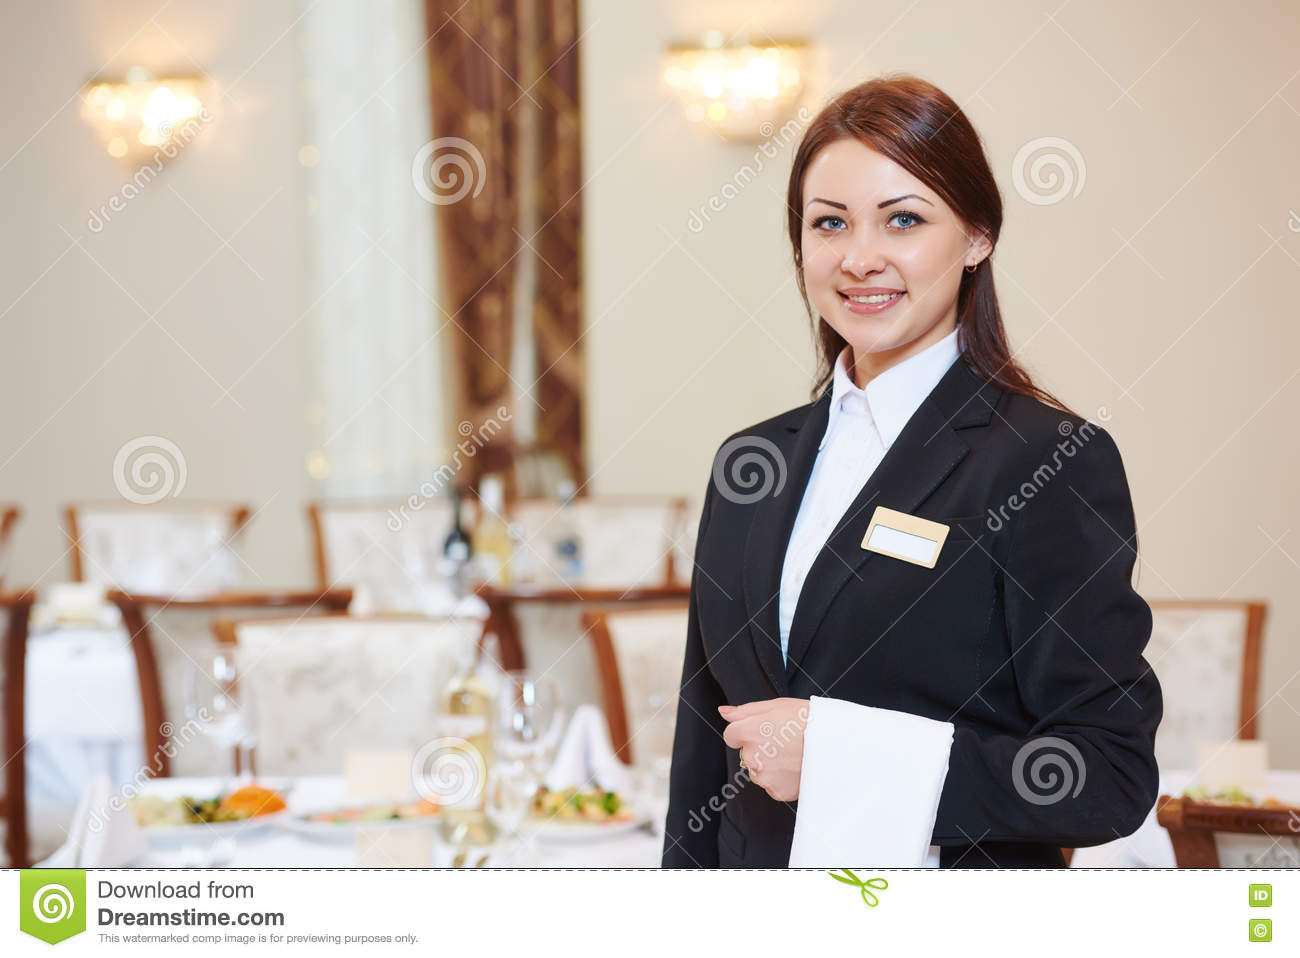 Restaurant manager dating site